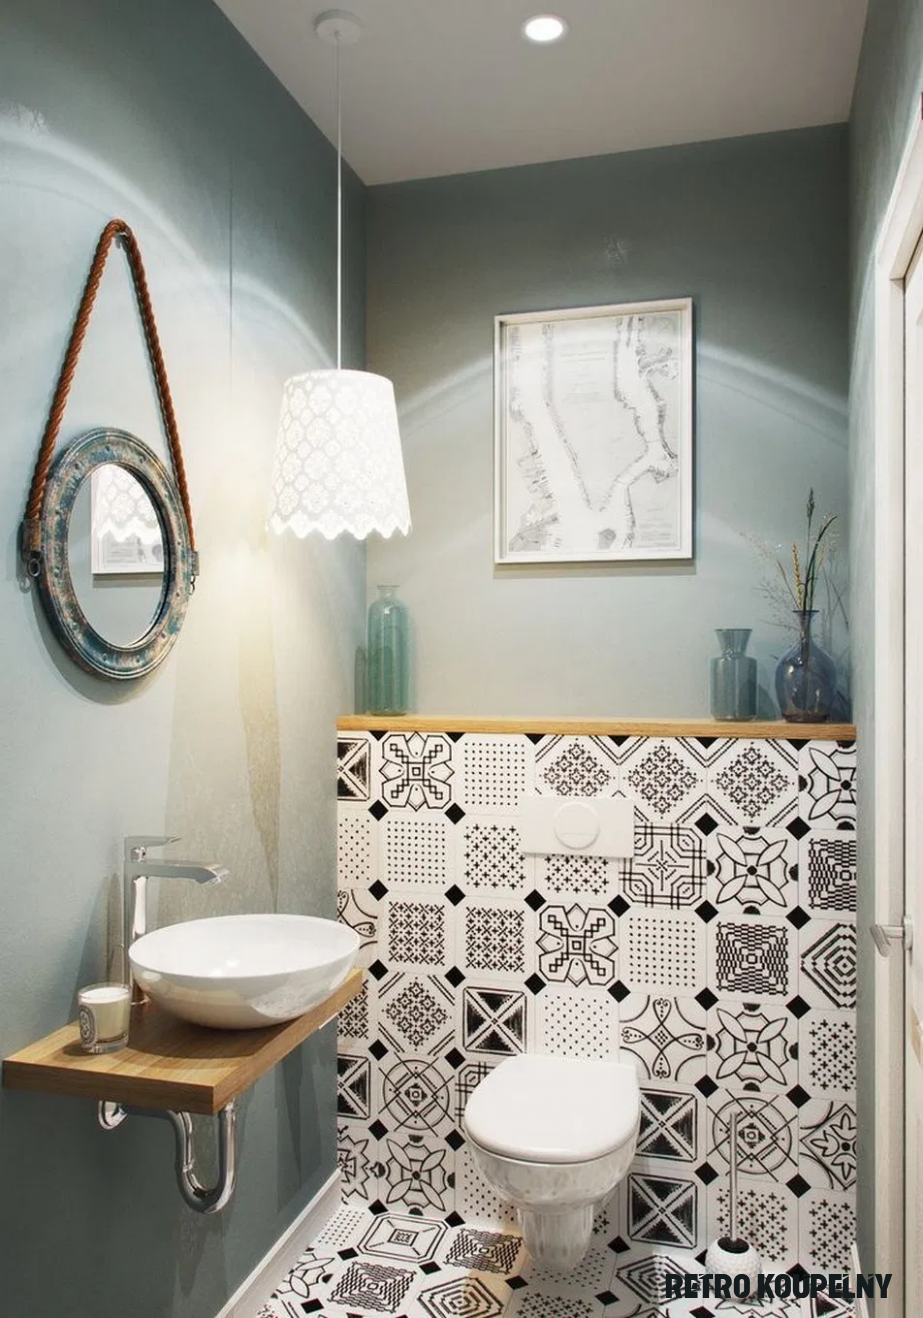 5 small bathroom designs and ideas 5  Koupelna, Retro, Záchod